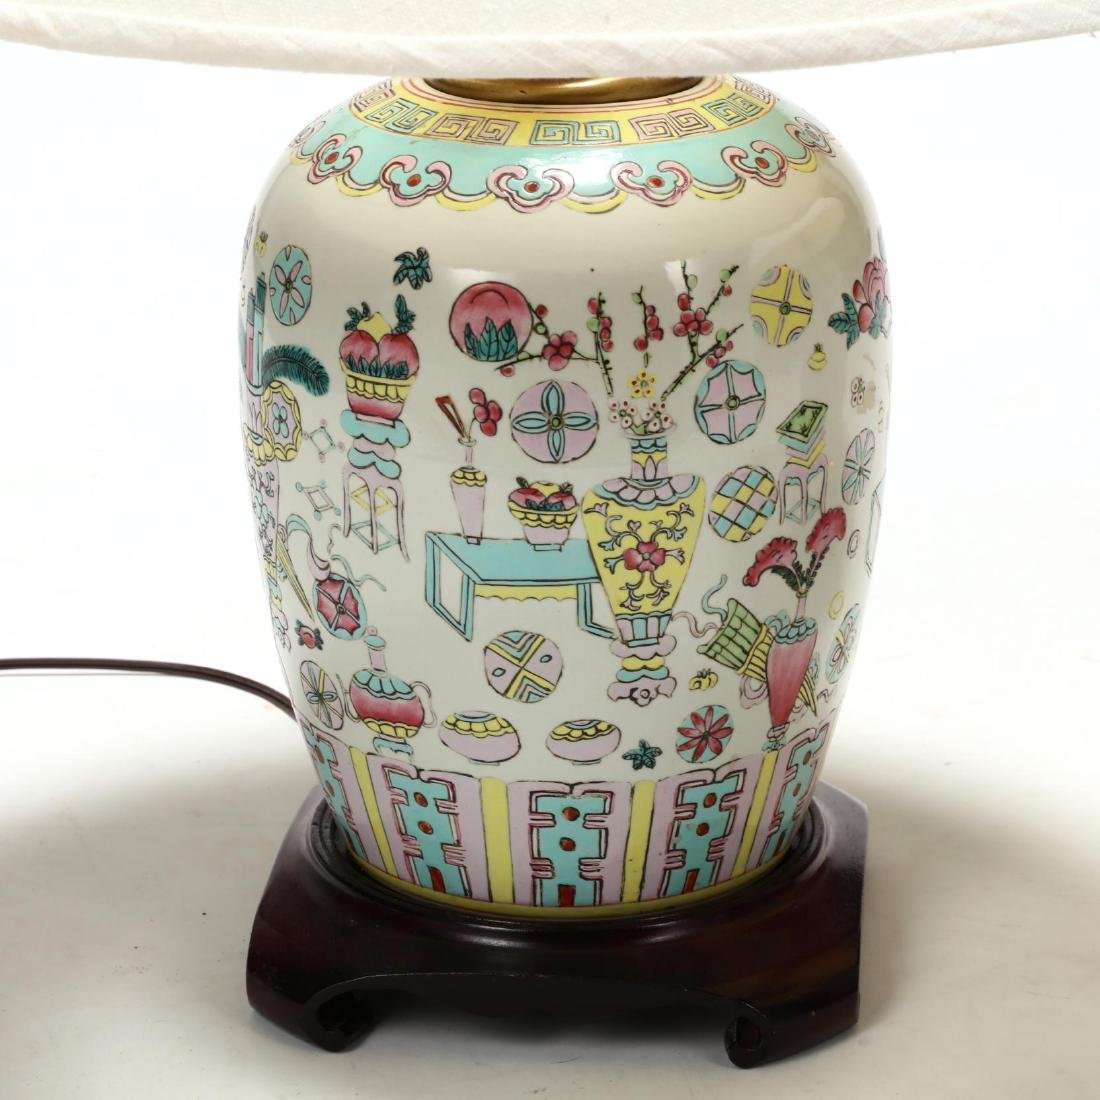 A Pair of Chinese Lamps with One Hundred Antiques Motif - 2